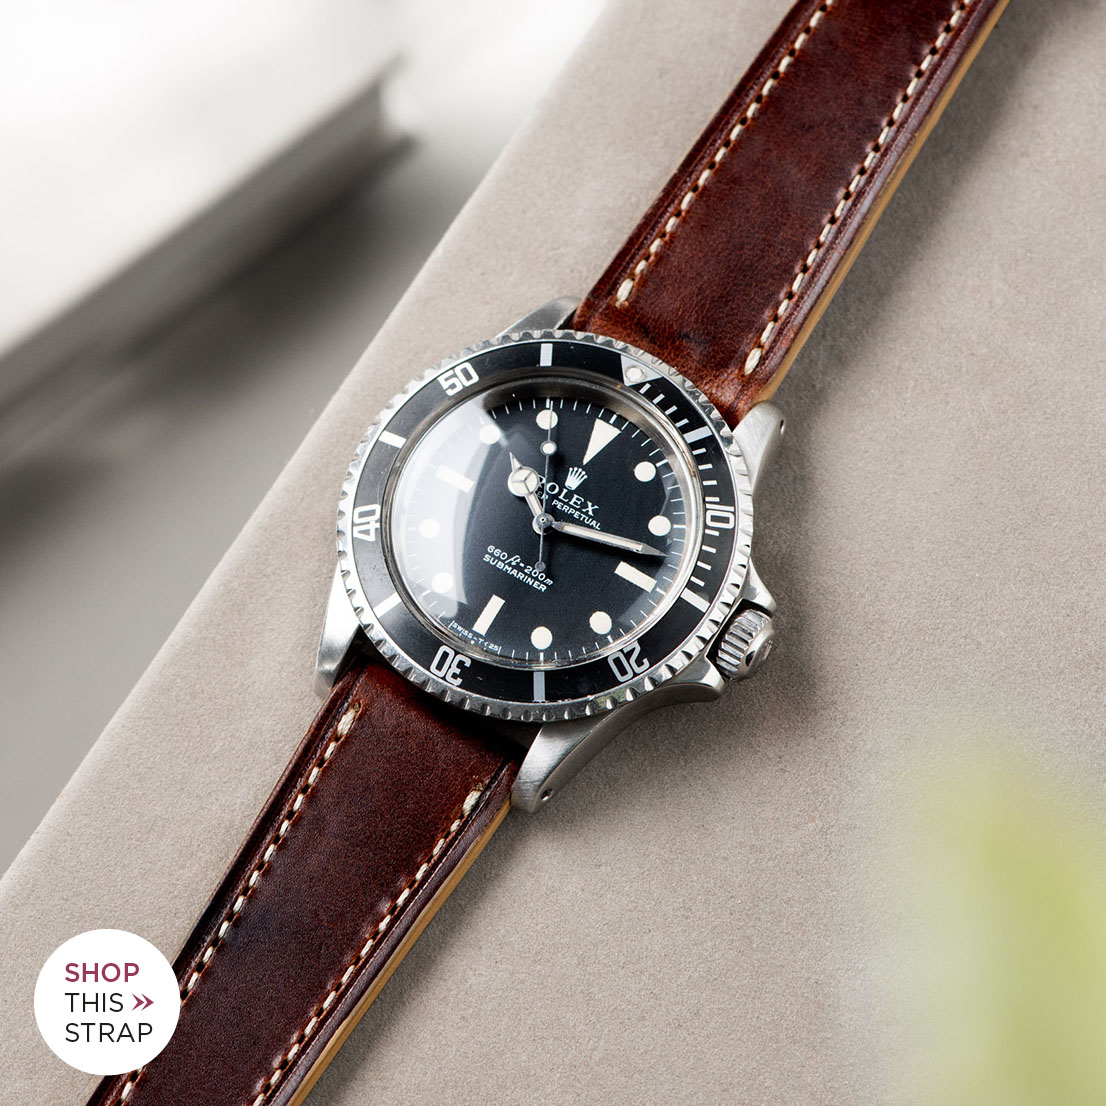 Bulang and Sons_Strap Guide_Rolex 5513 Submariner_SIENA BROWN RETRO LEATHER WATCH STRAP